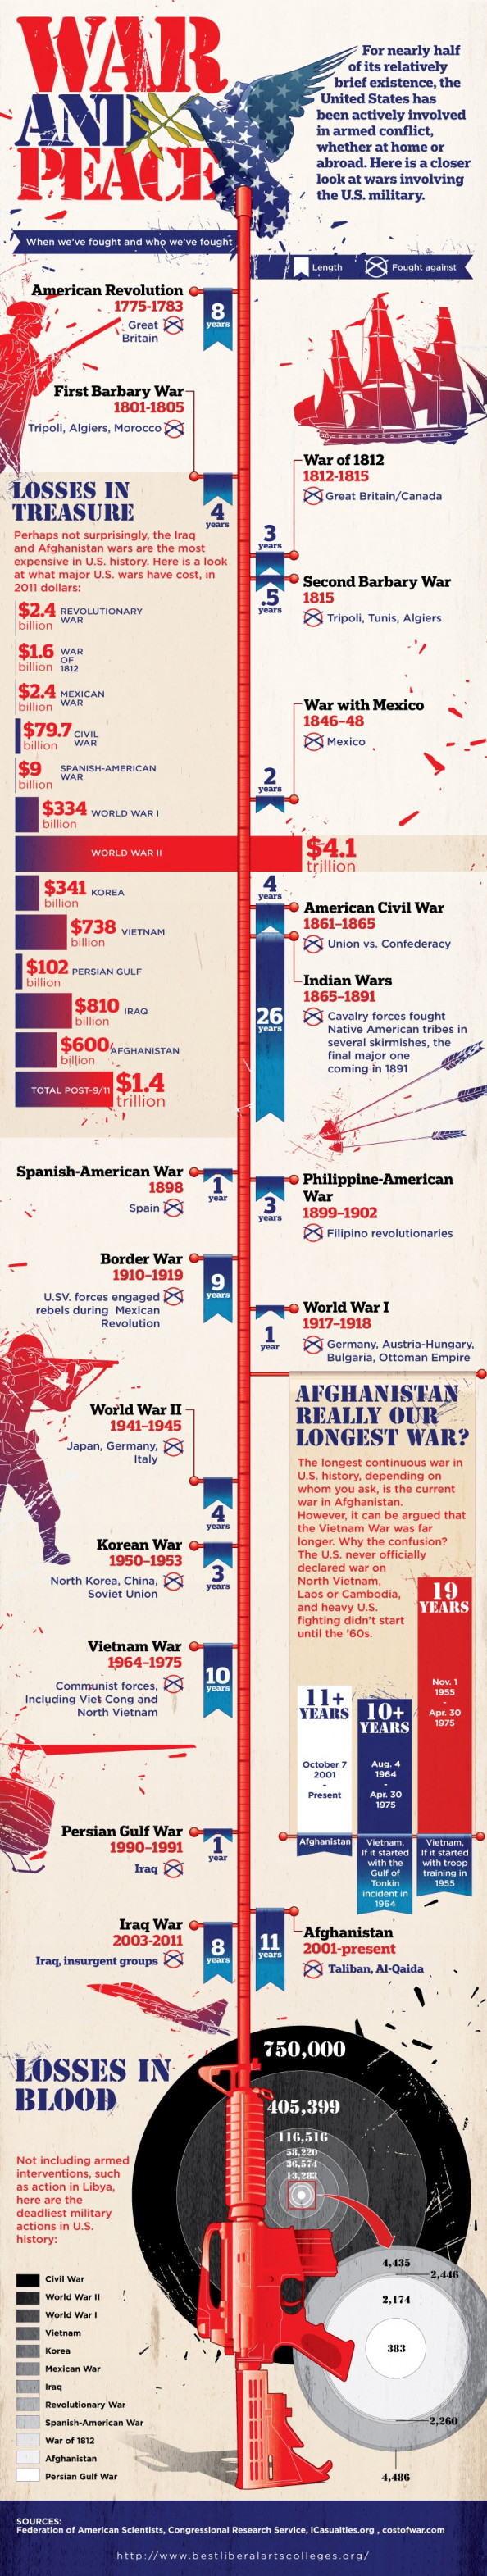 The Wars the US fought Infographic